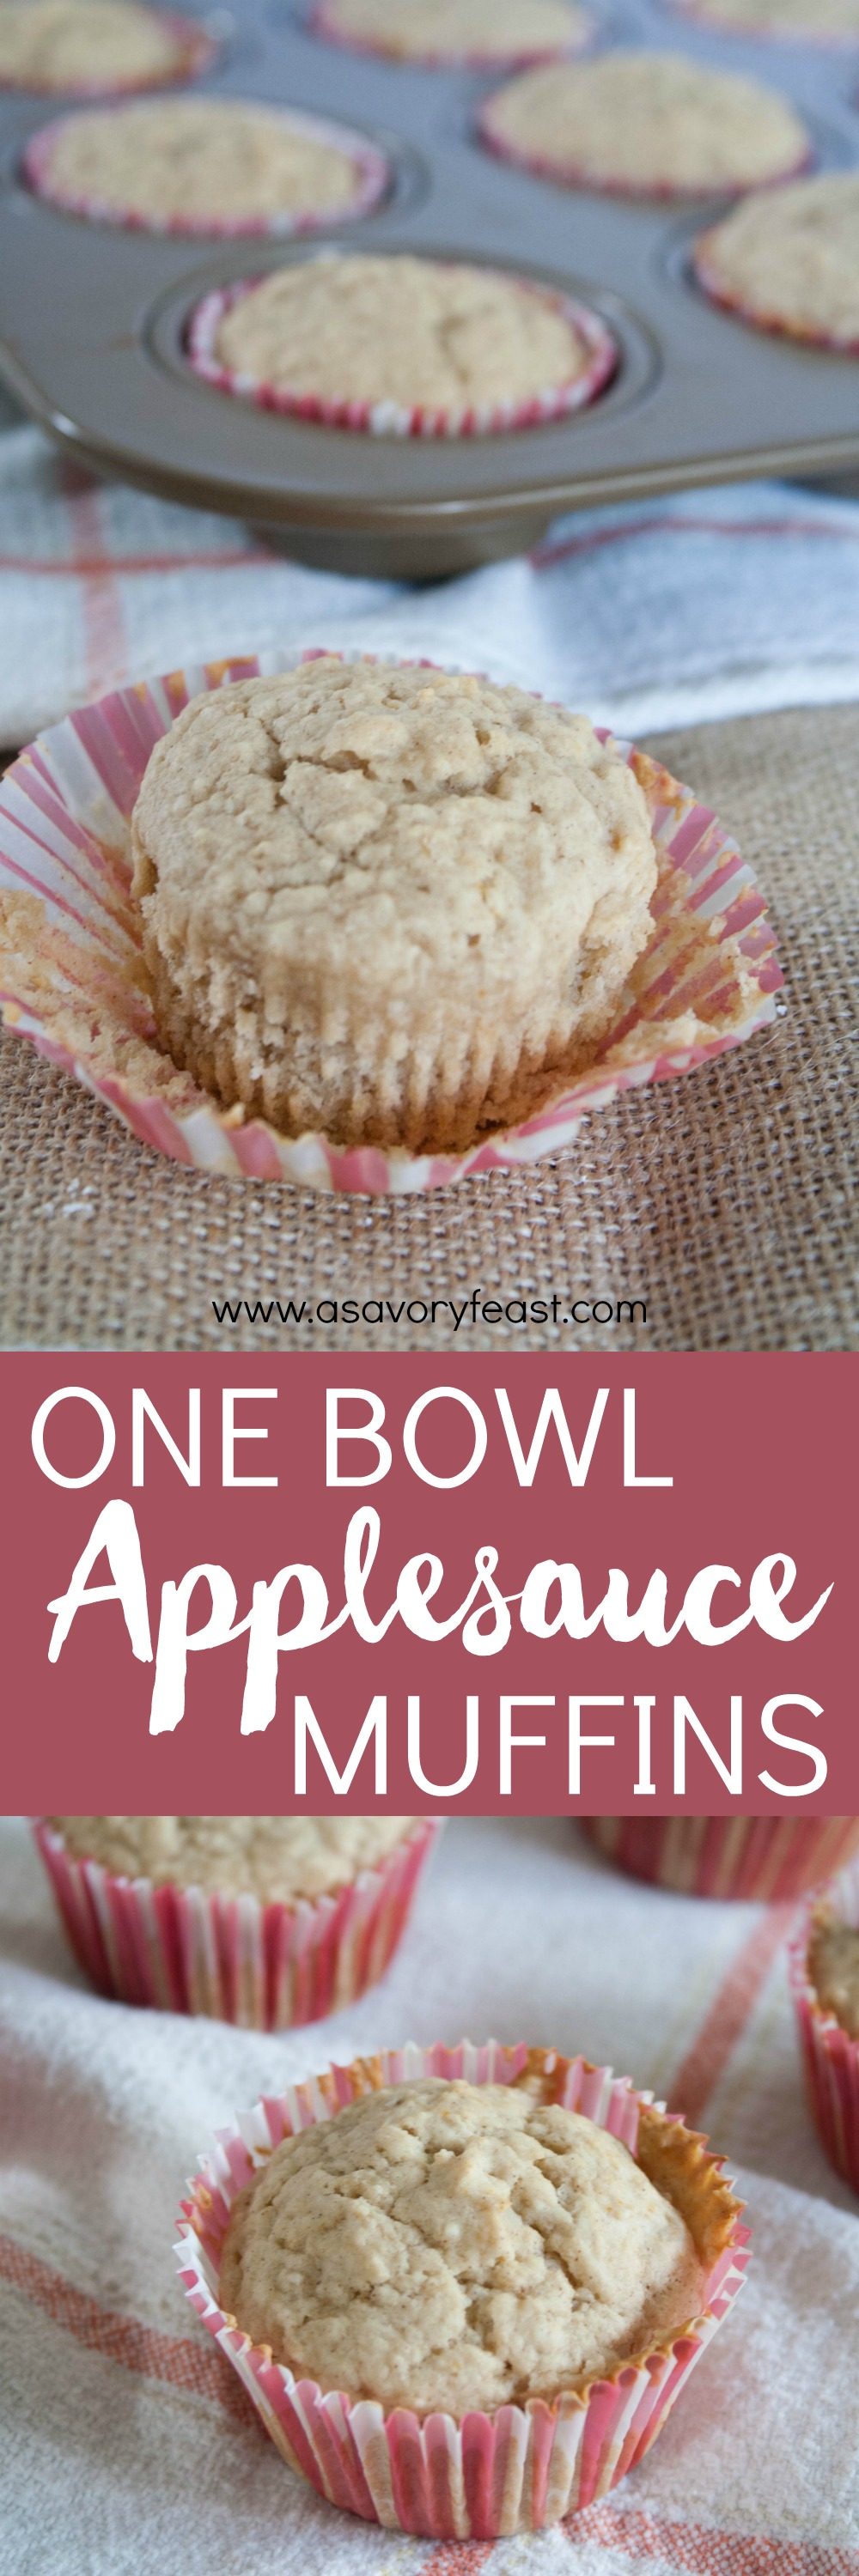 Applesauce gives these One Bowl Applesauce Muffins a moist texture and a delicious fruity taste! Great for a grab-and-go breakfast, these muffins don't require much clean up since they are mixed up in one bowl!